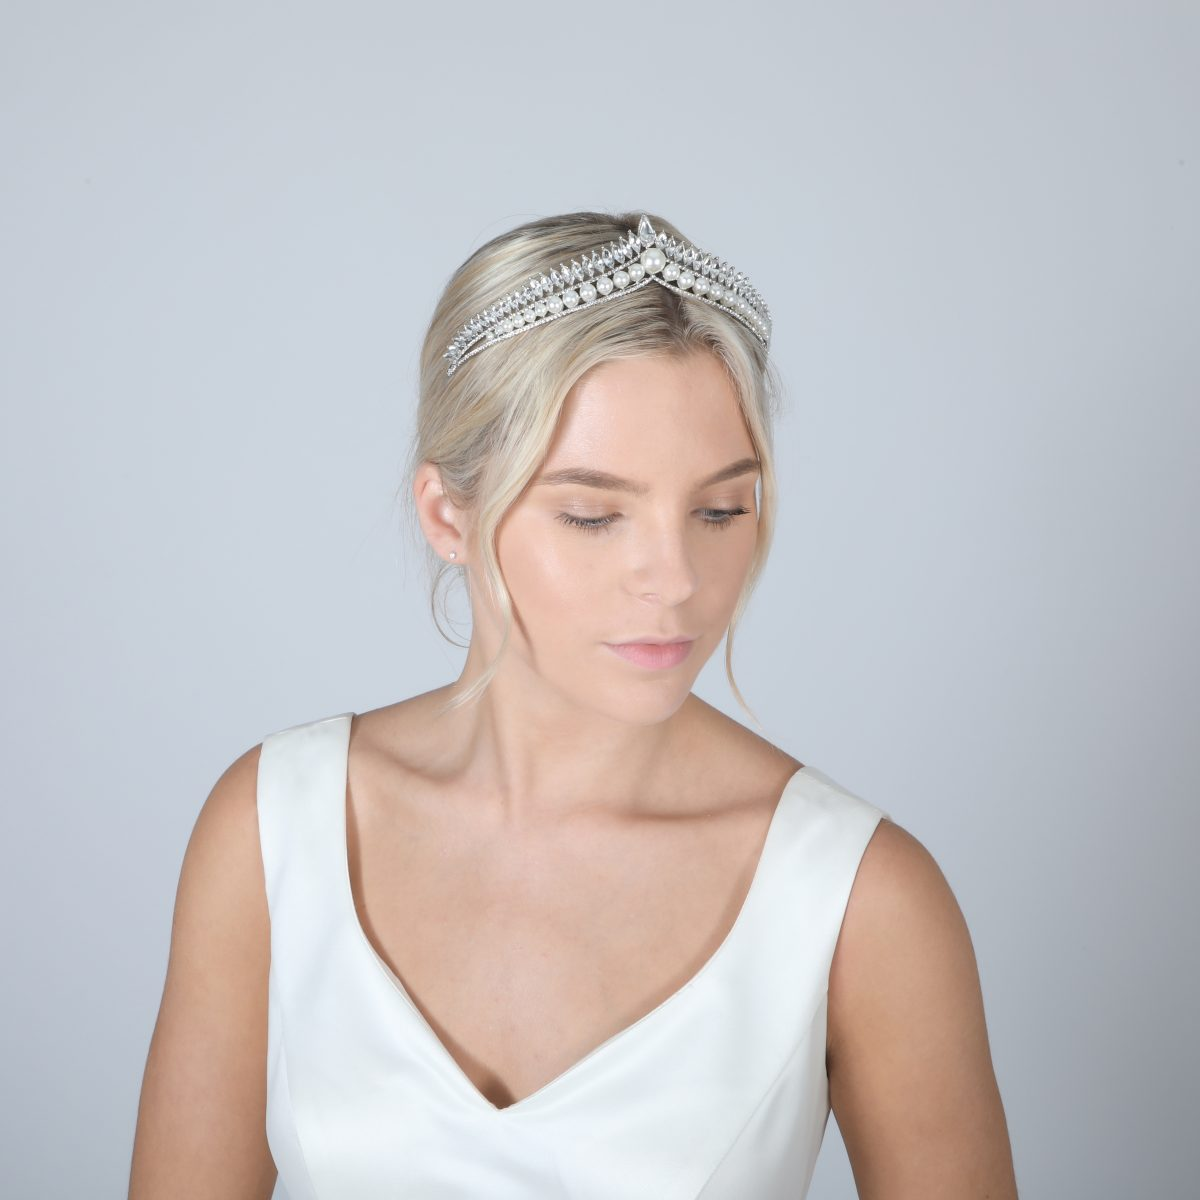 Perfect Bridal Crown - PBT5003 1